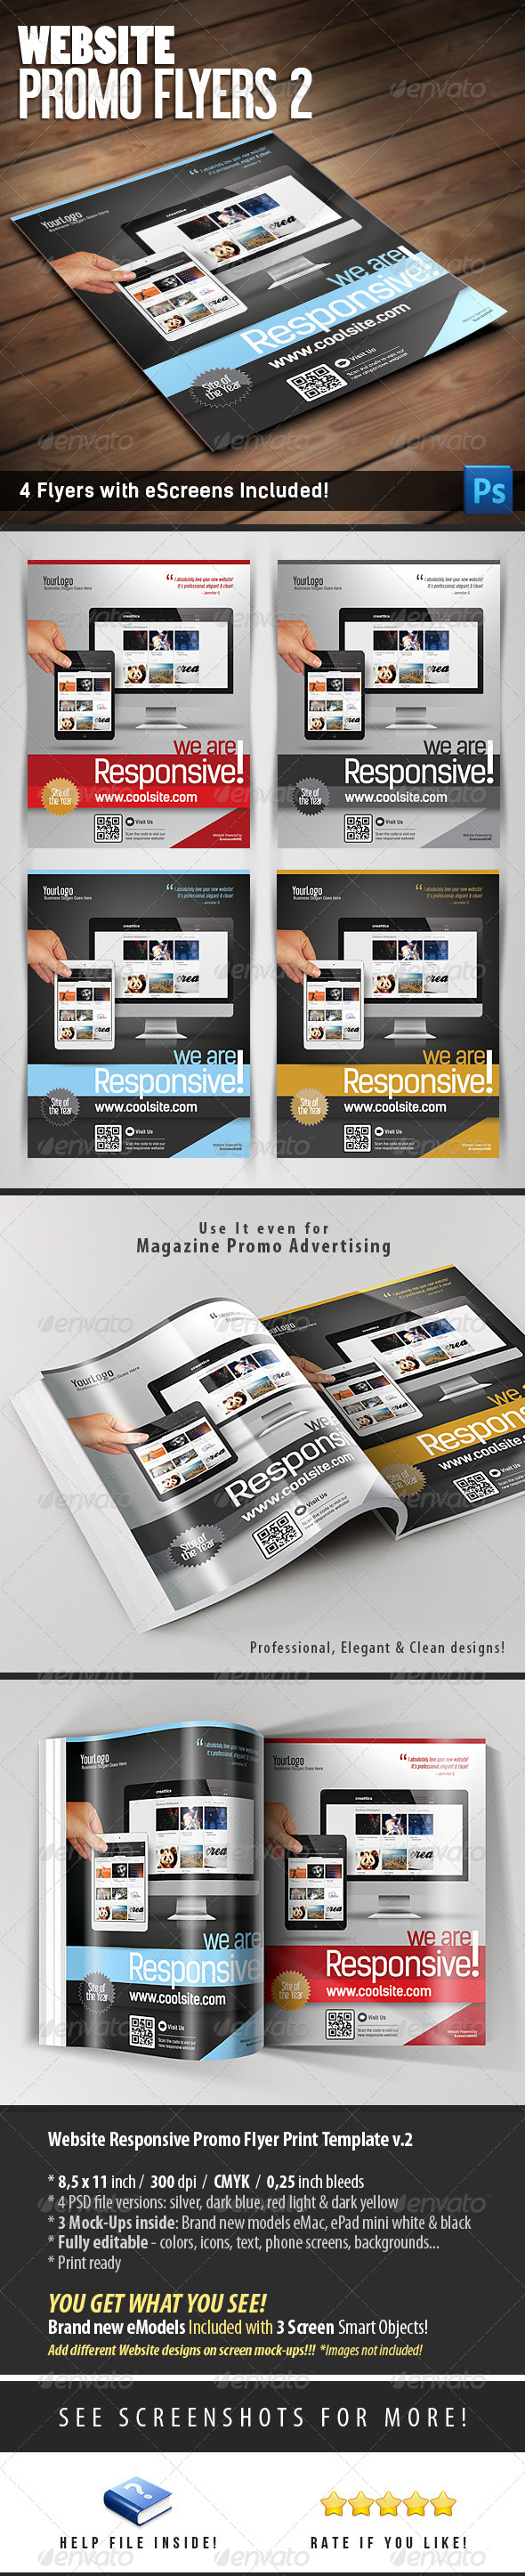 GraphicRiver Website Promo Flyers v.2 4581523